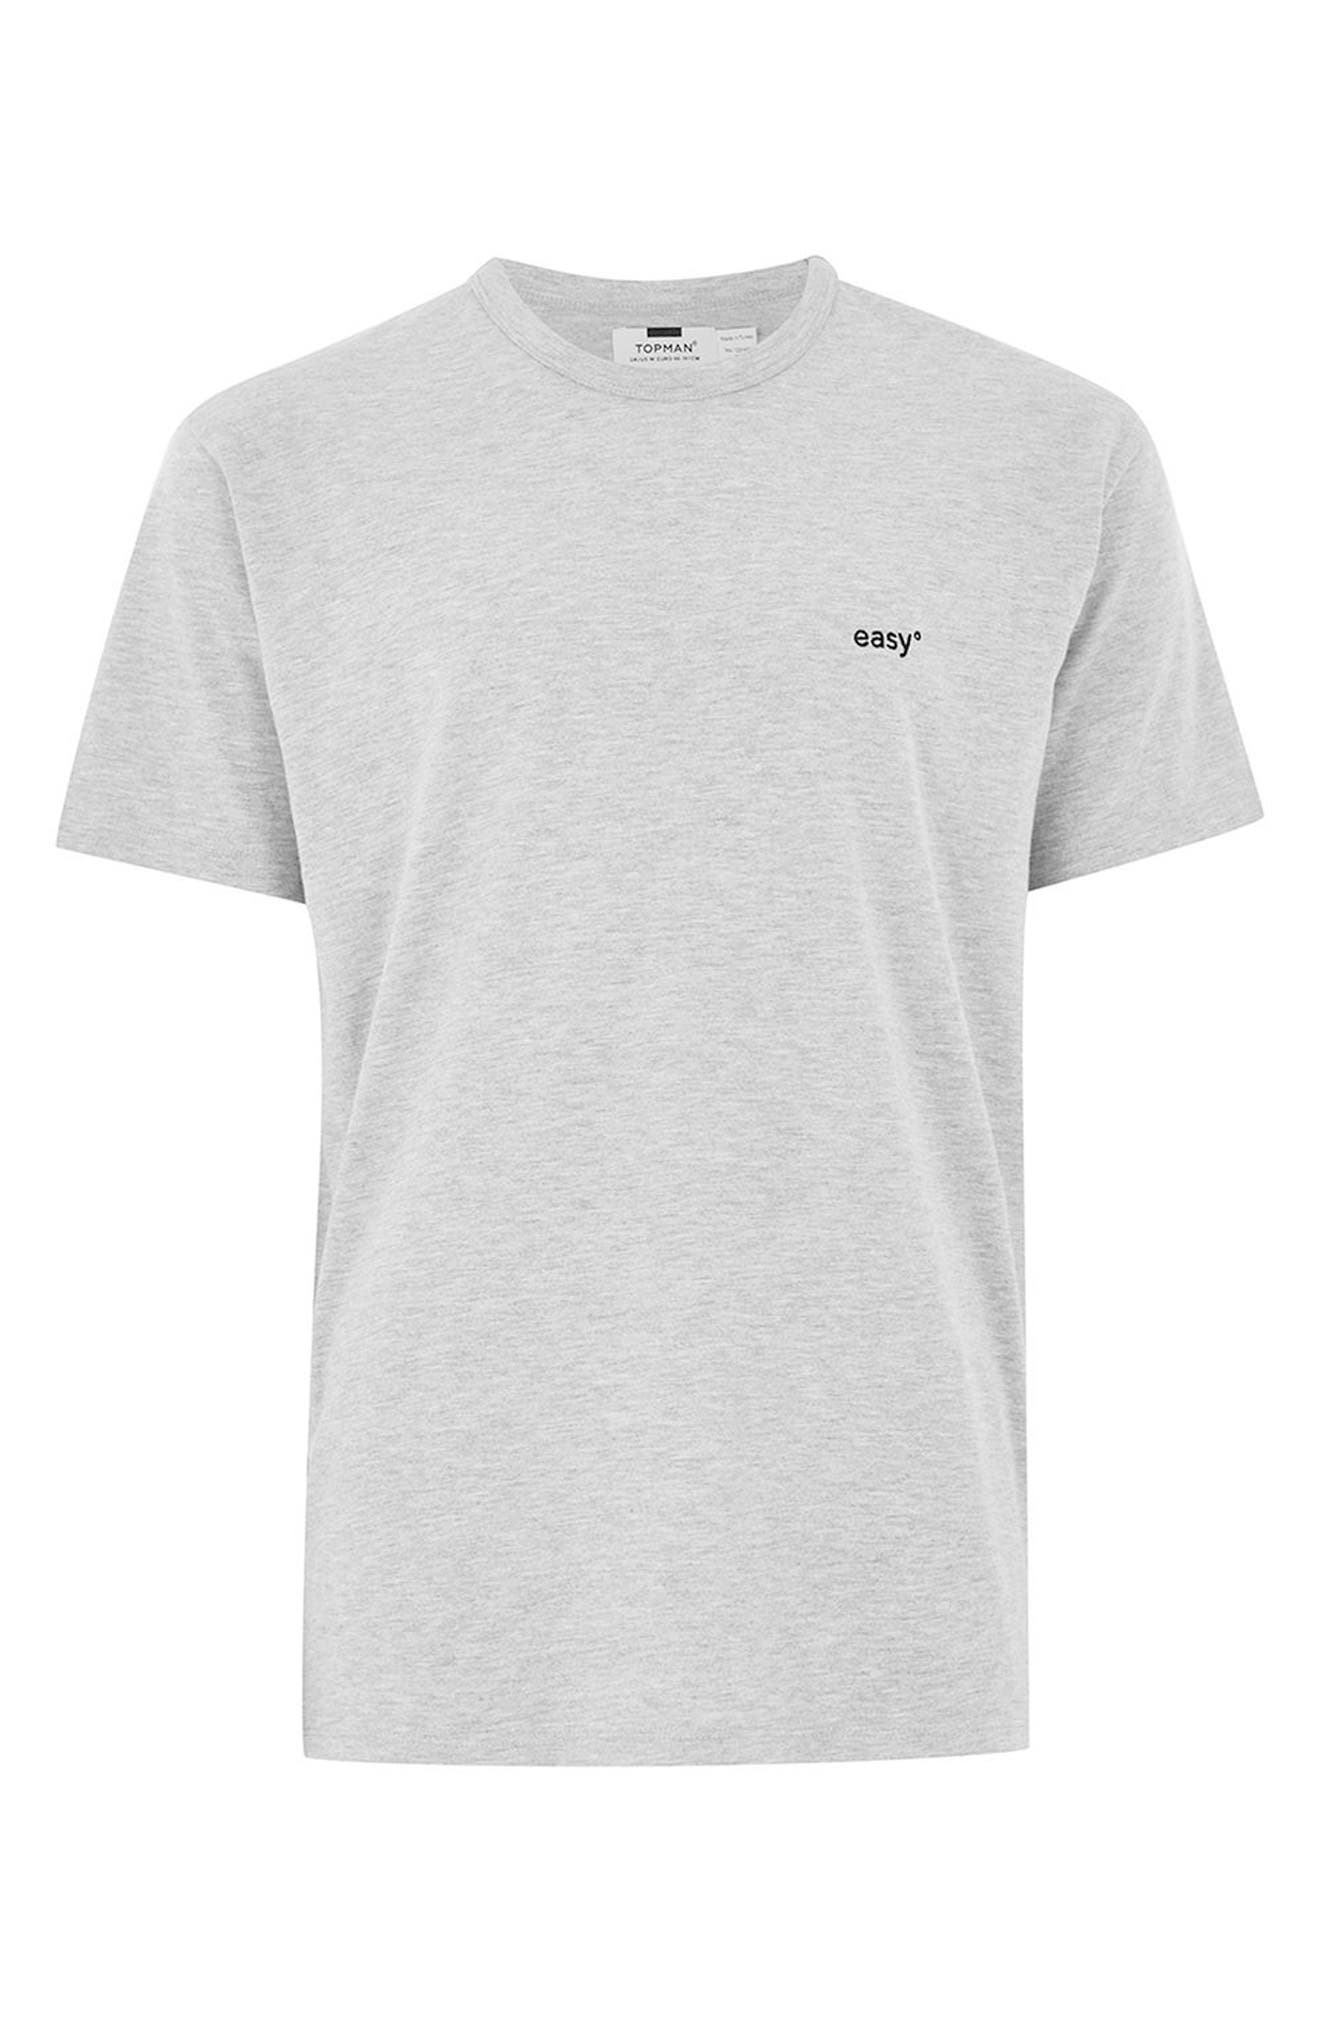 Oversize Embroidered Easy T-Shirt,                             Alternate thumbnail 4, color,                             020